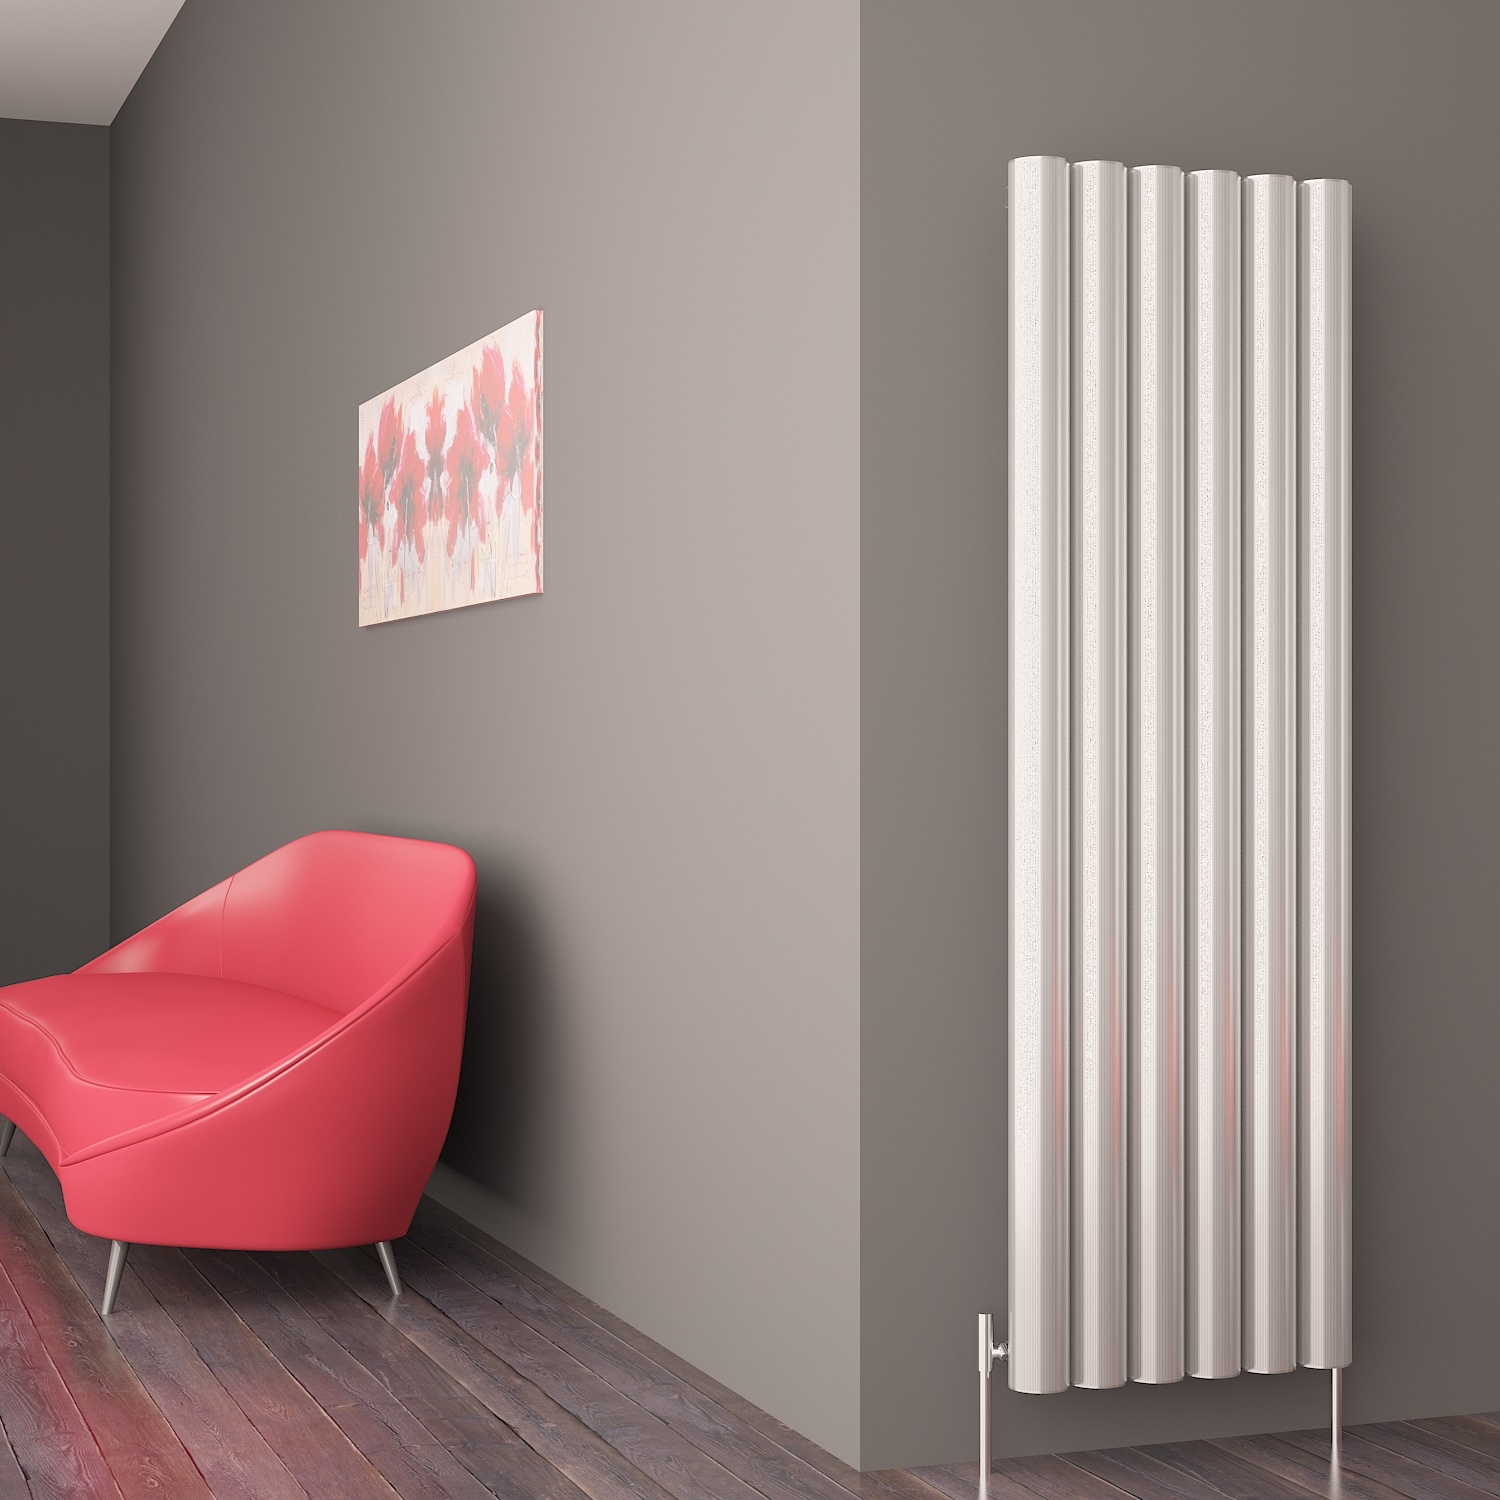 Whirlpool Outdoor Otto Carisa Otto Polished Anodized Aluminium Designer Vertical Radiators 3 Sizes